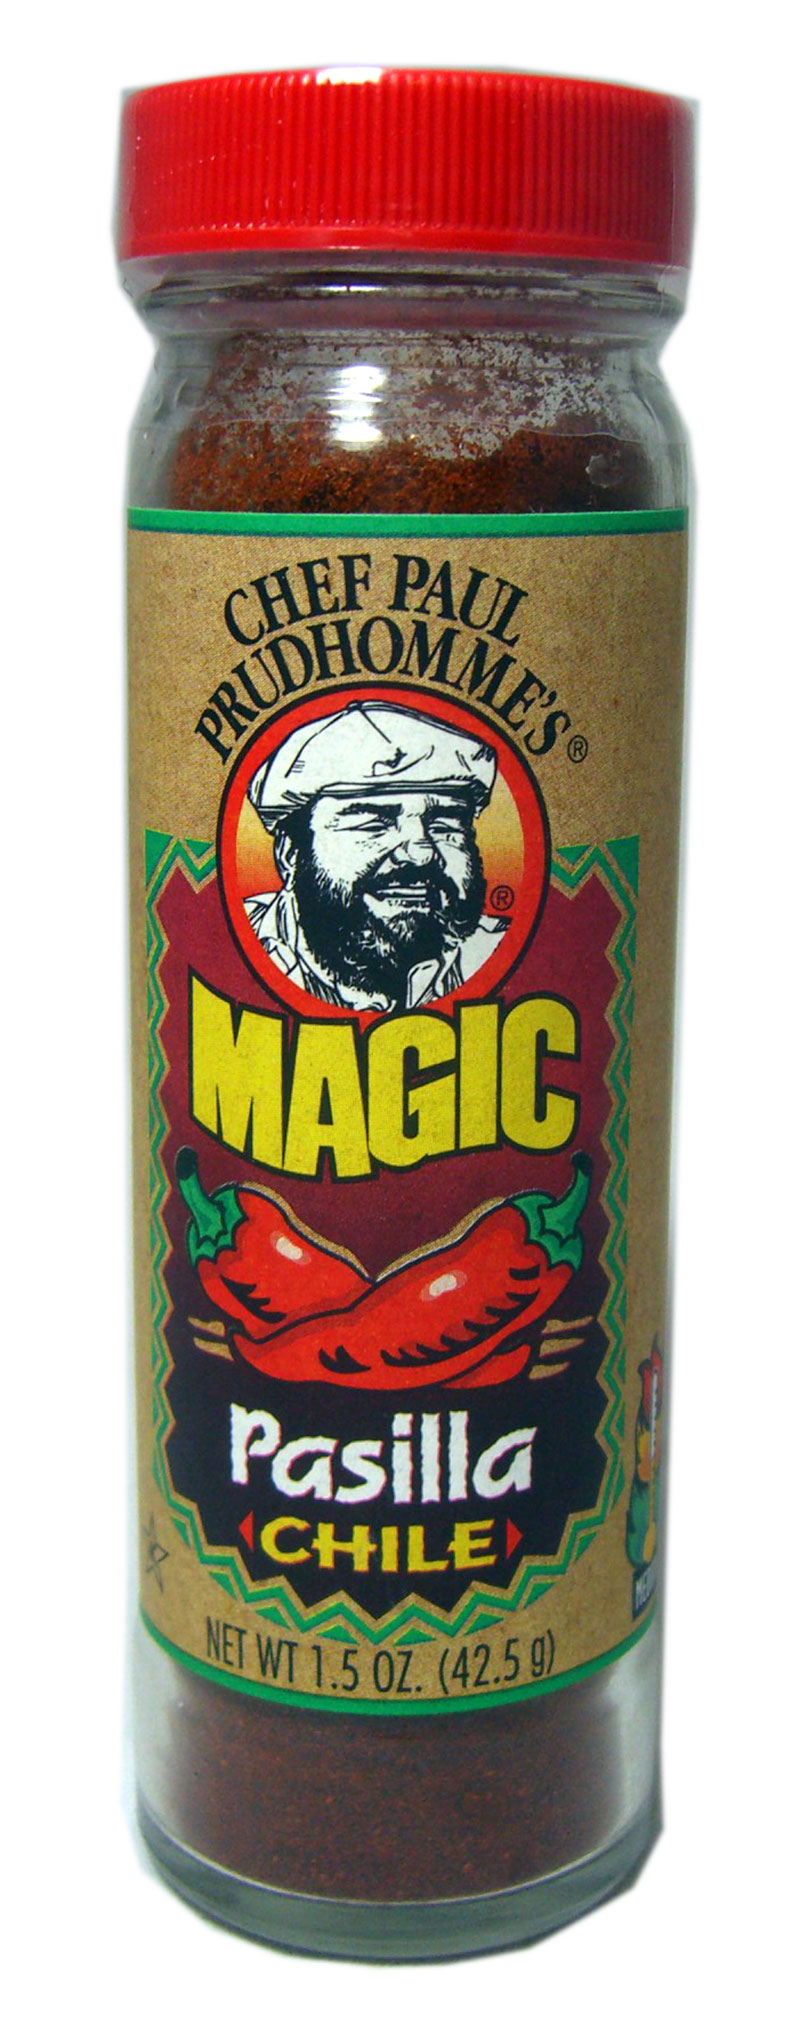 Paul Prudhomme Magic Pasilla Chile 42,5g (MHD: 03.06.2019)